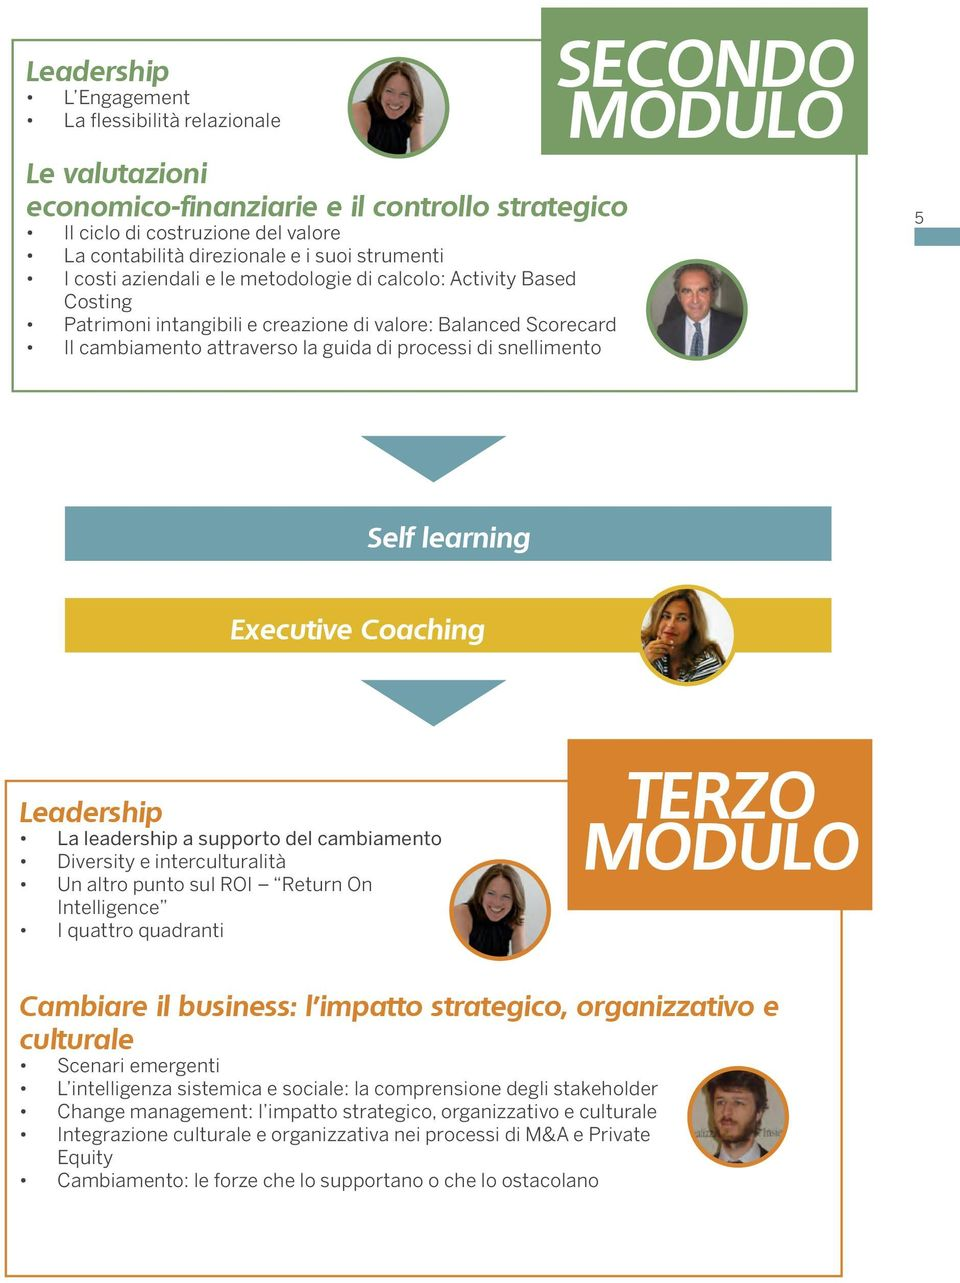 SECONDO MODULO 5 Self learning Executive Coaching Leadership La leadership a supporto del cambiamento Diversity e interculturalità Un altro punto sul ROI Return On Intelligence I quattro quadranti